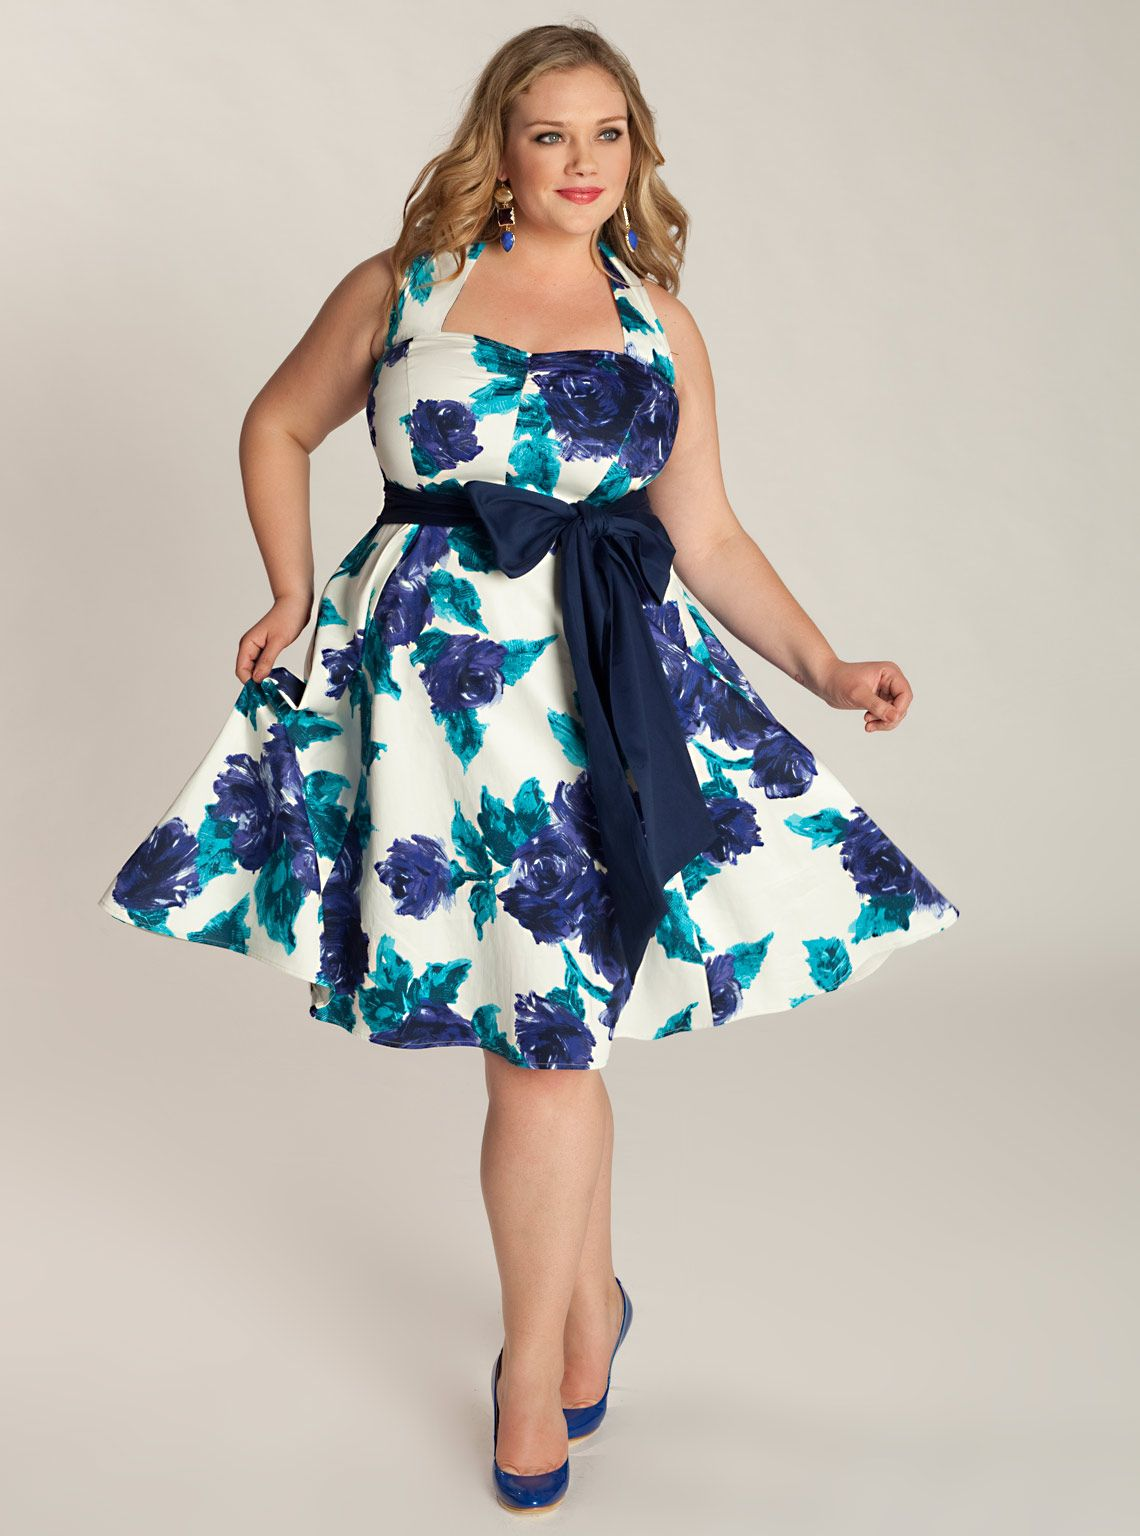 SKIRTS & SHORTS Shop women's skirts and shorts in this season's favorite styles. New Plus Size Collection · Free Shipping Over $75! · New Styles Up To 50% Off · Get Up To 75% Off.